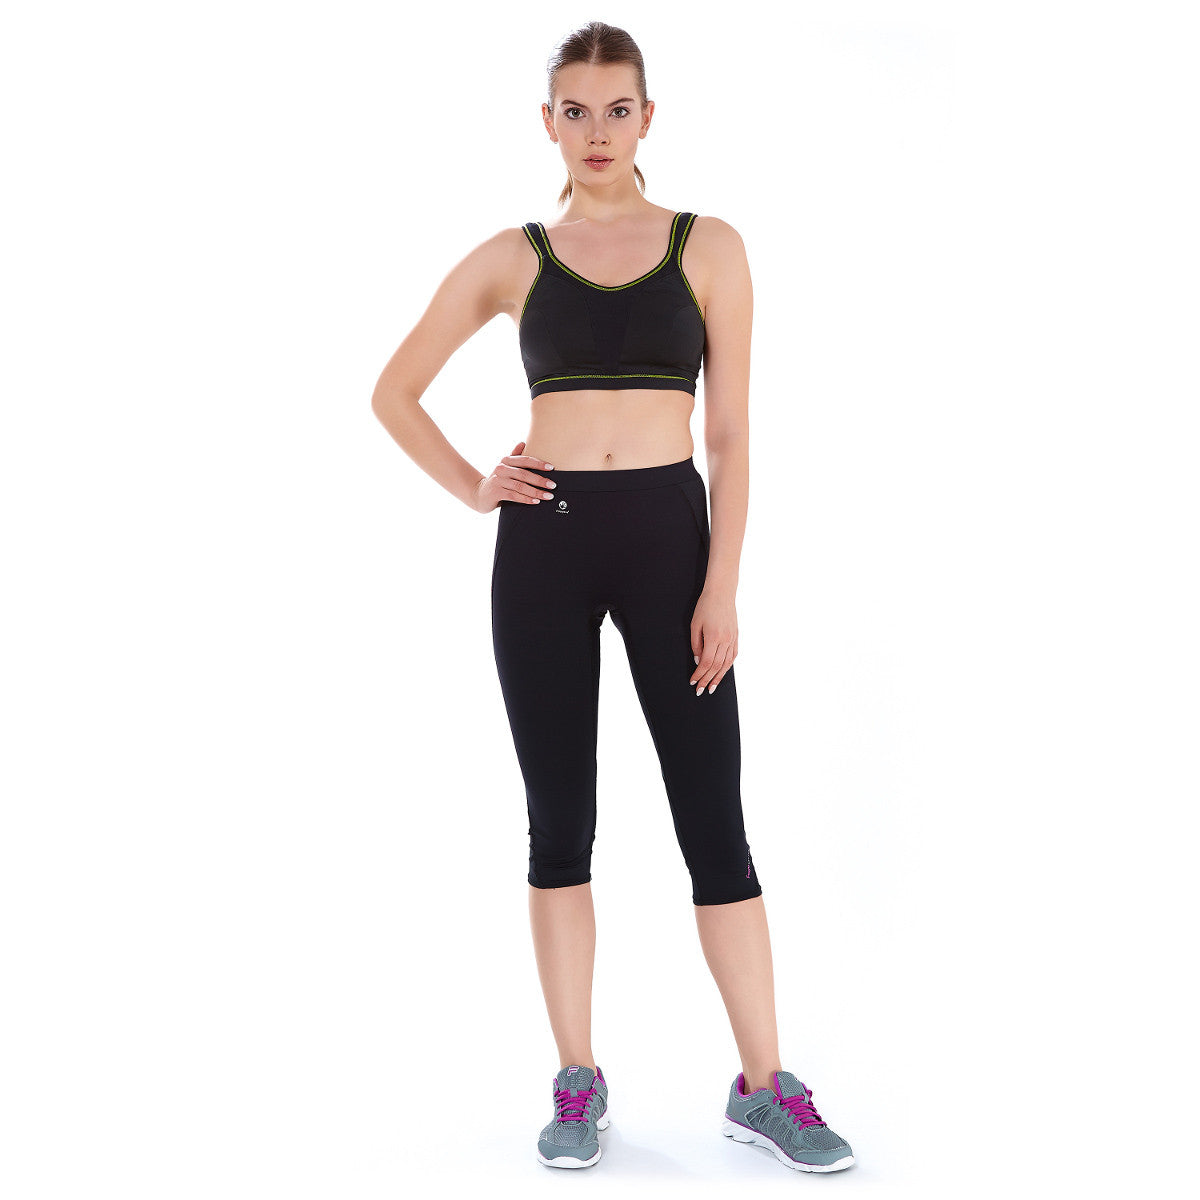 0965c0435d062 Freya-Active-Black-Crop-Top-Soft-Cup-Sports-